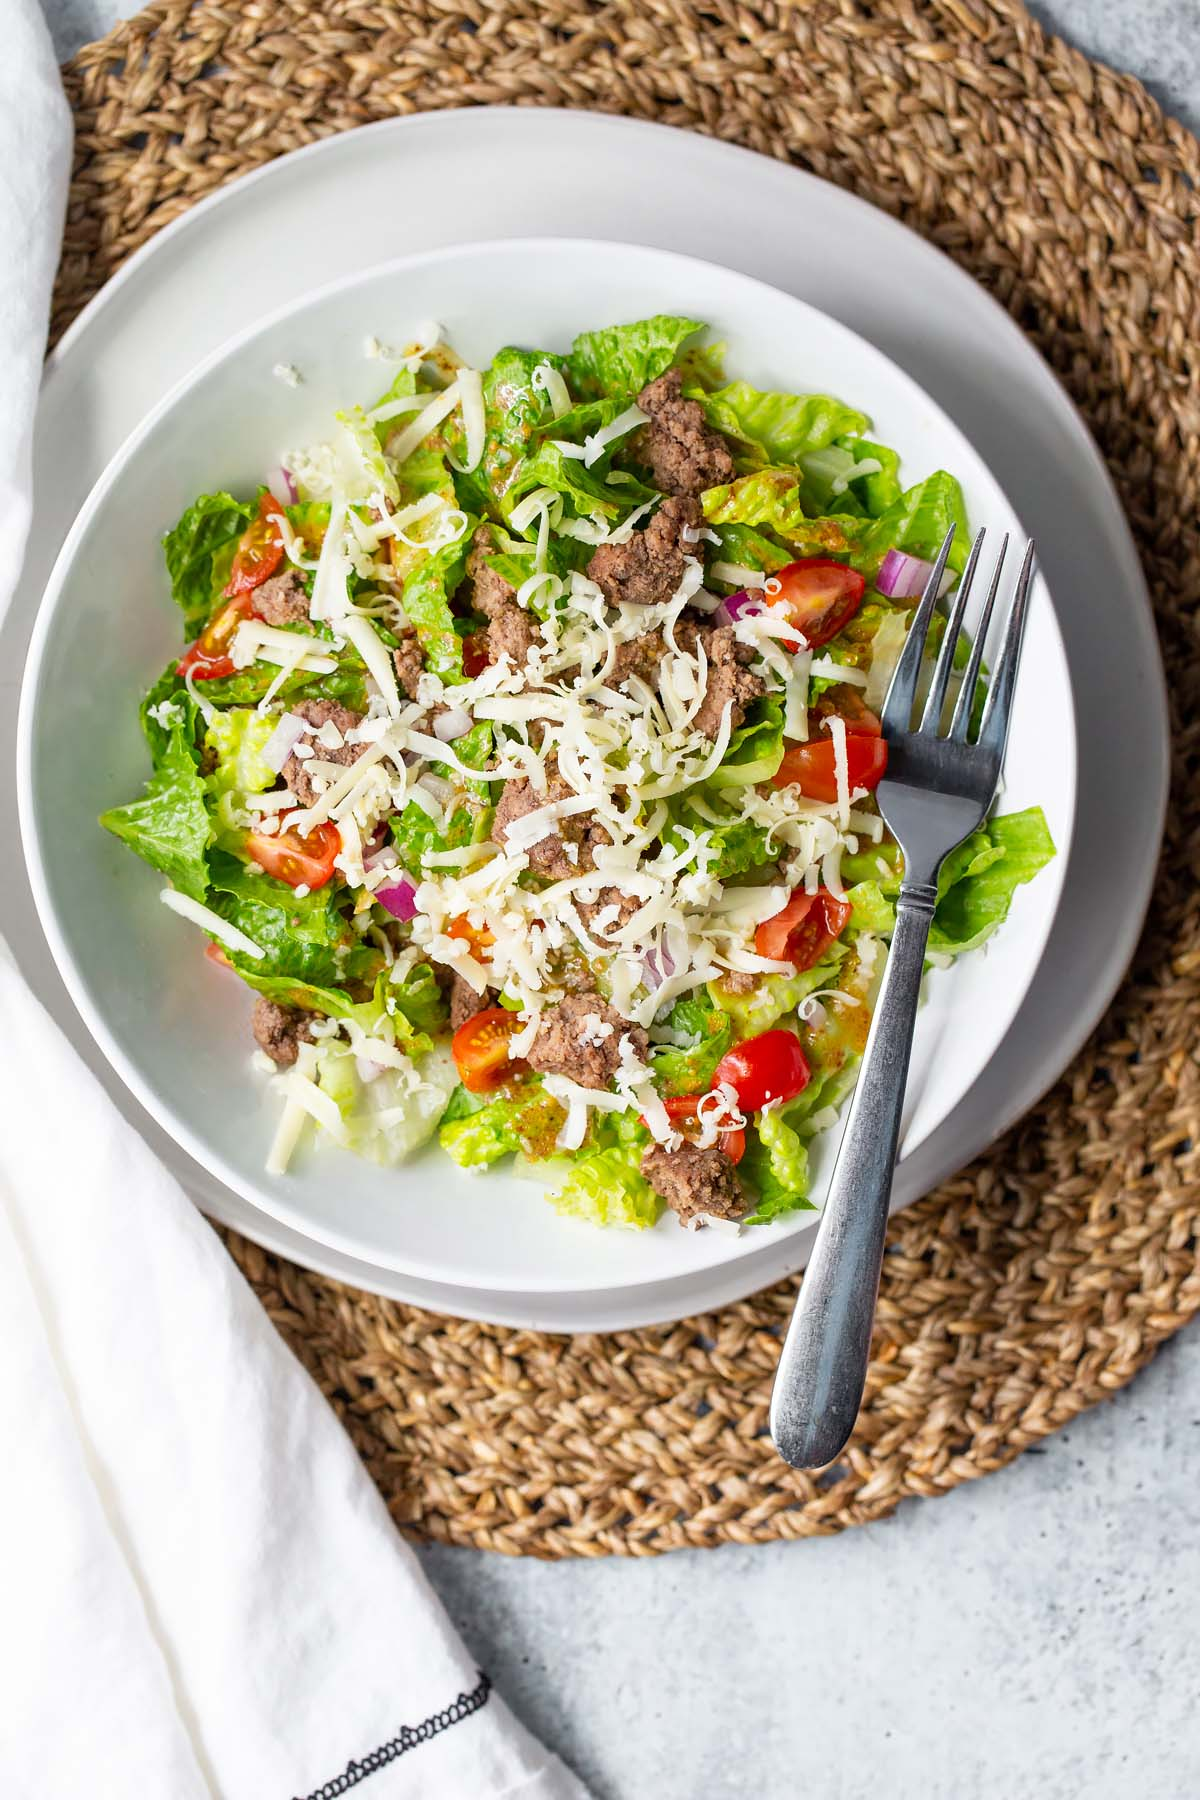 salad on a plate with a fork